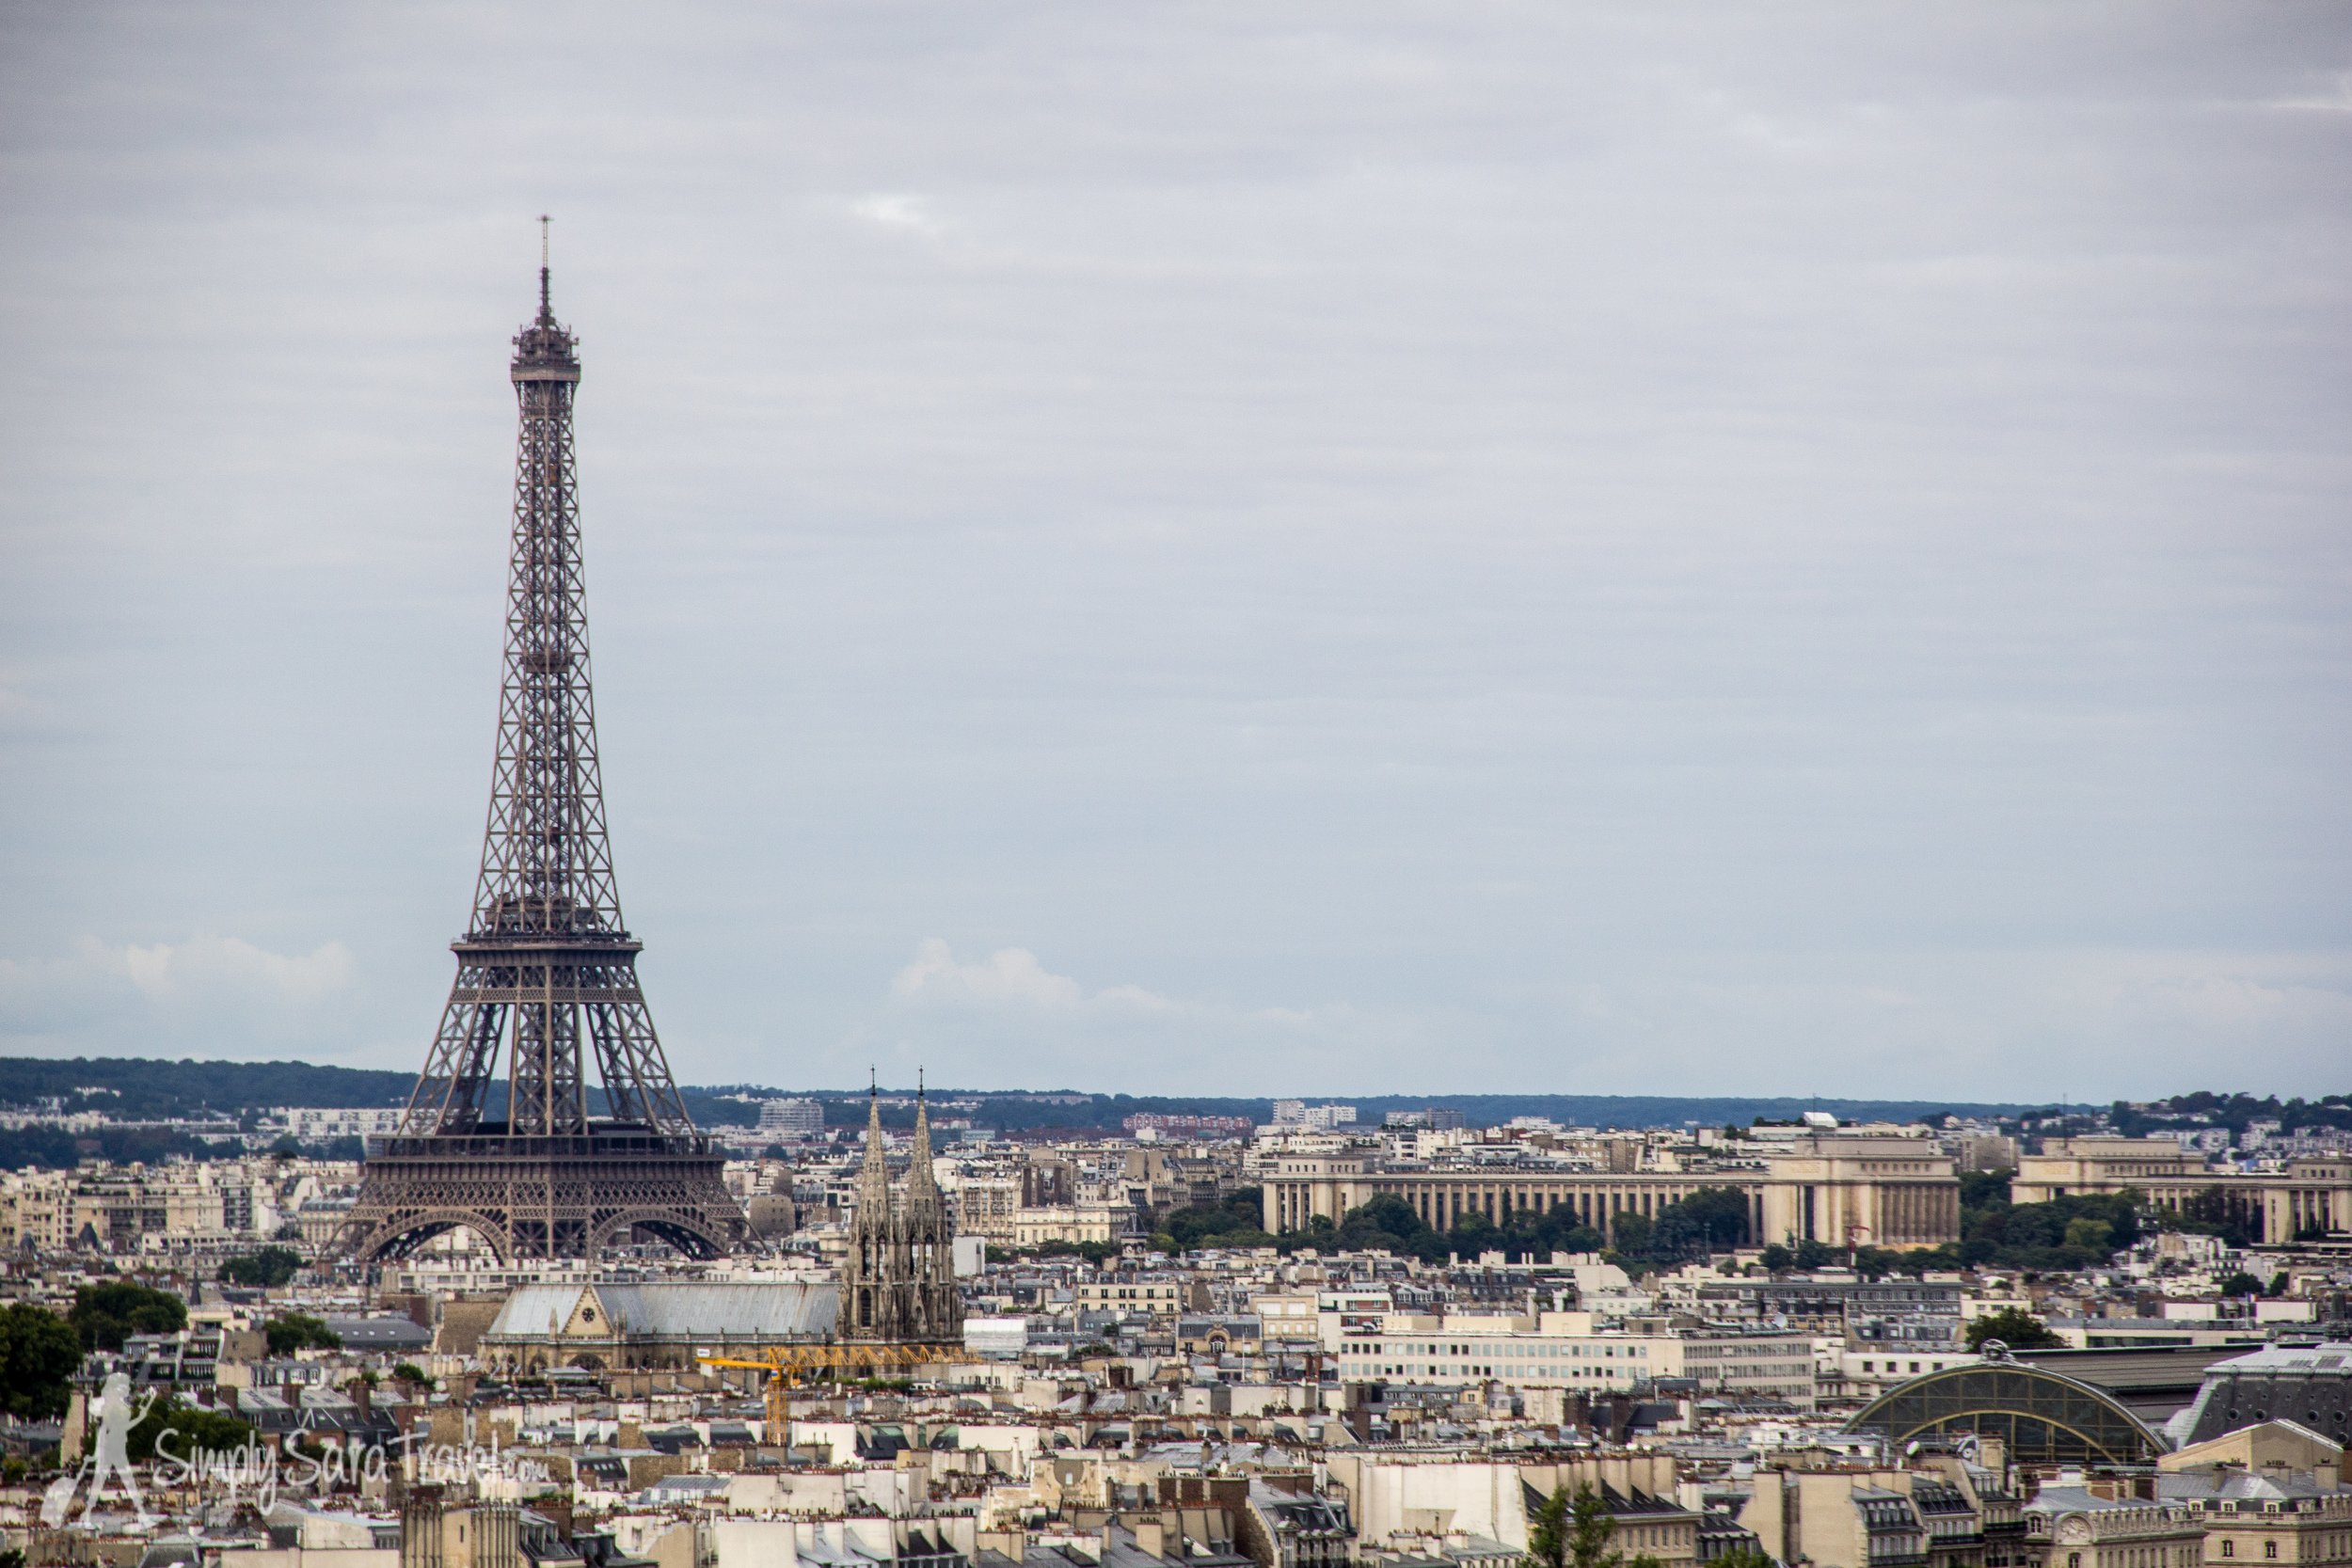 View of Eiffel Tower from Tour Saint-Jacques in Paris, France